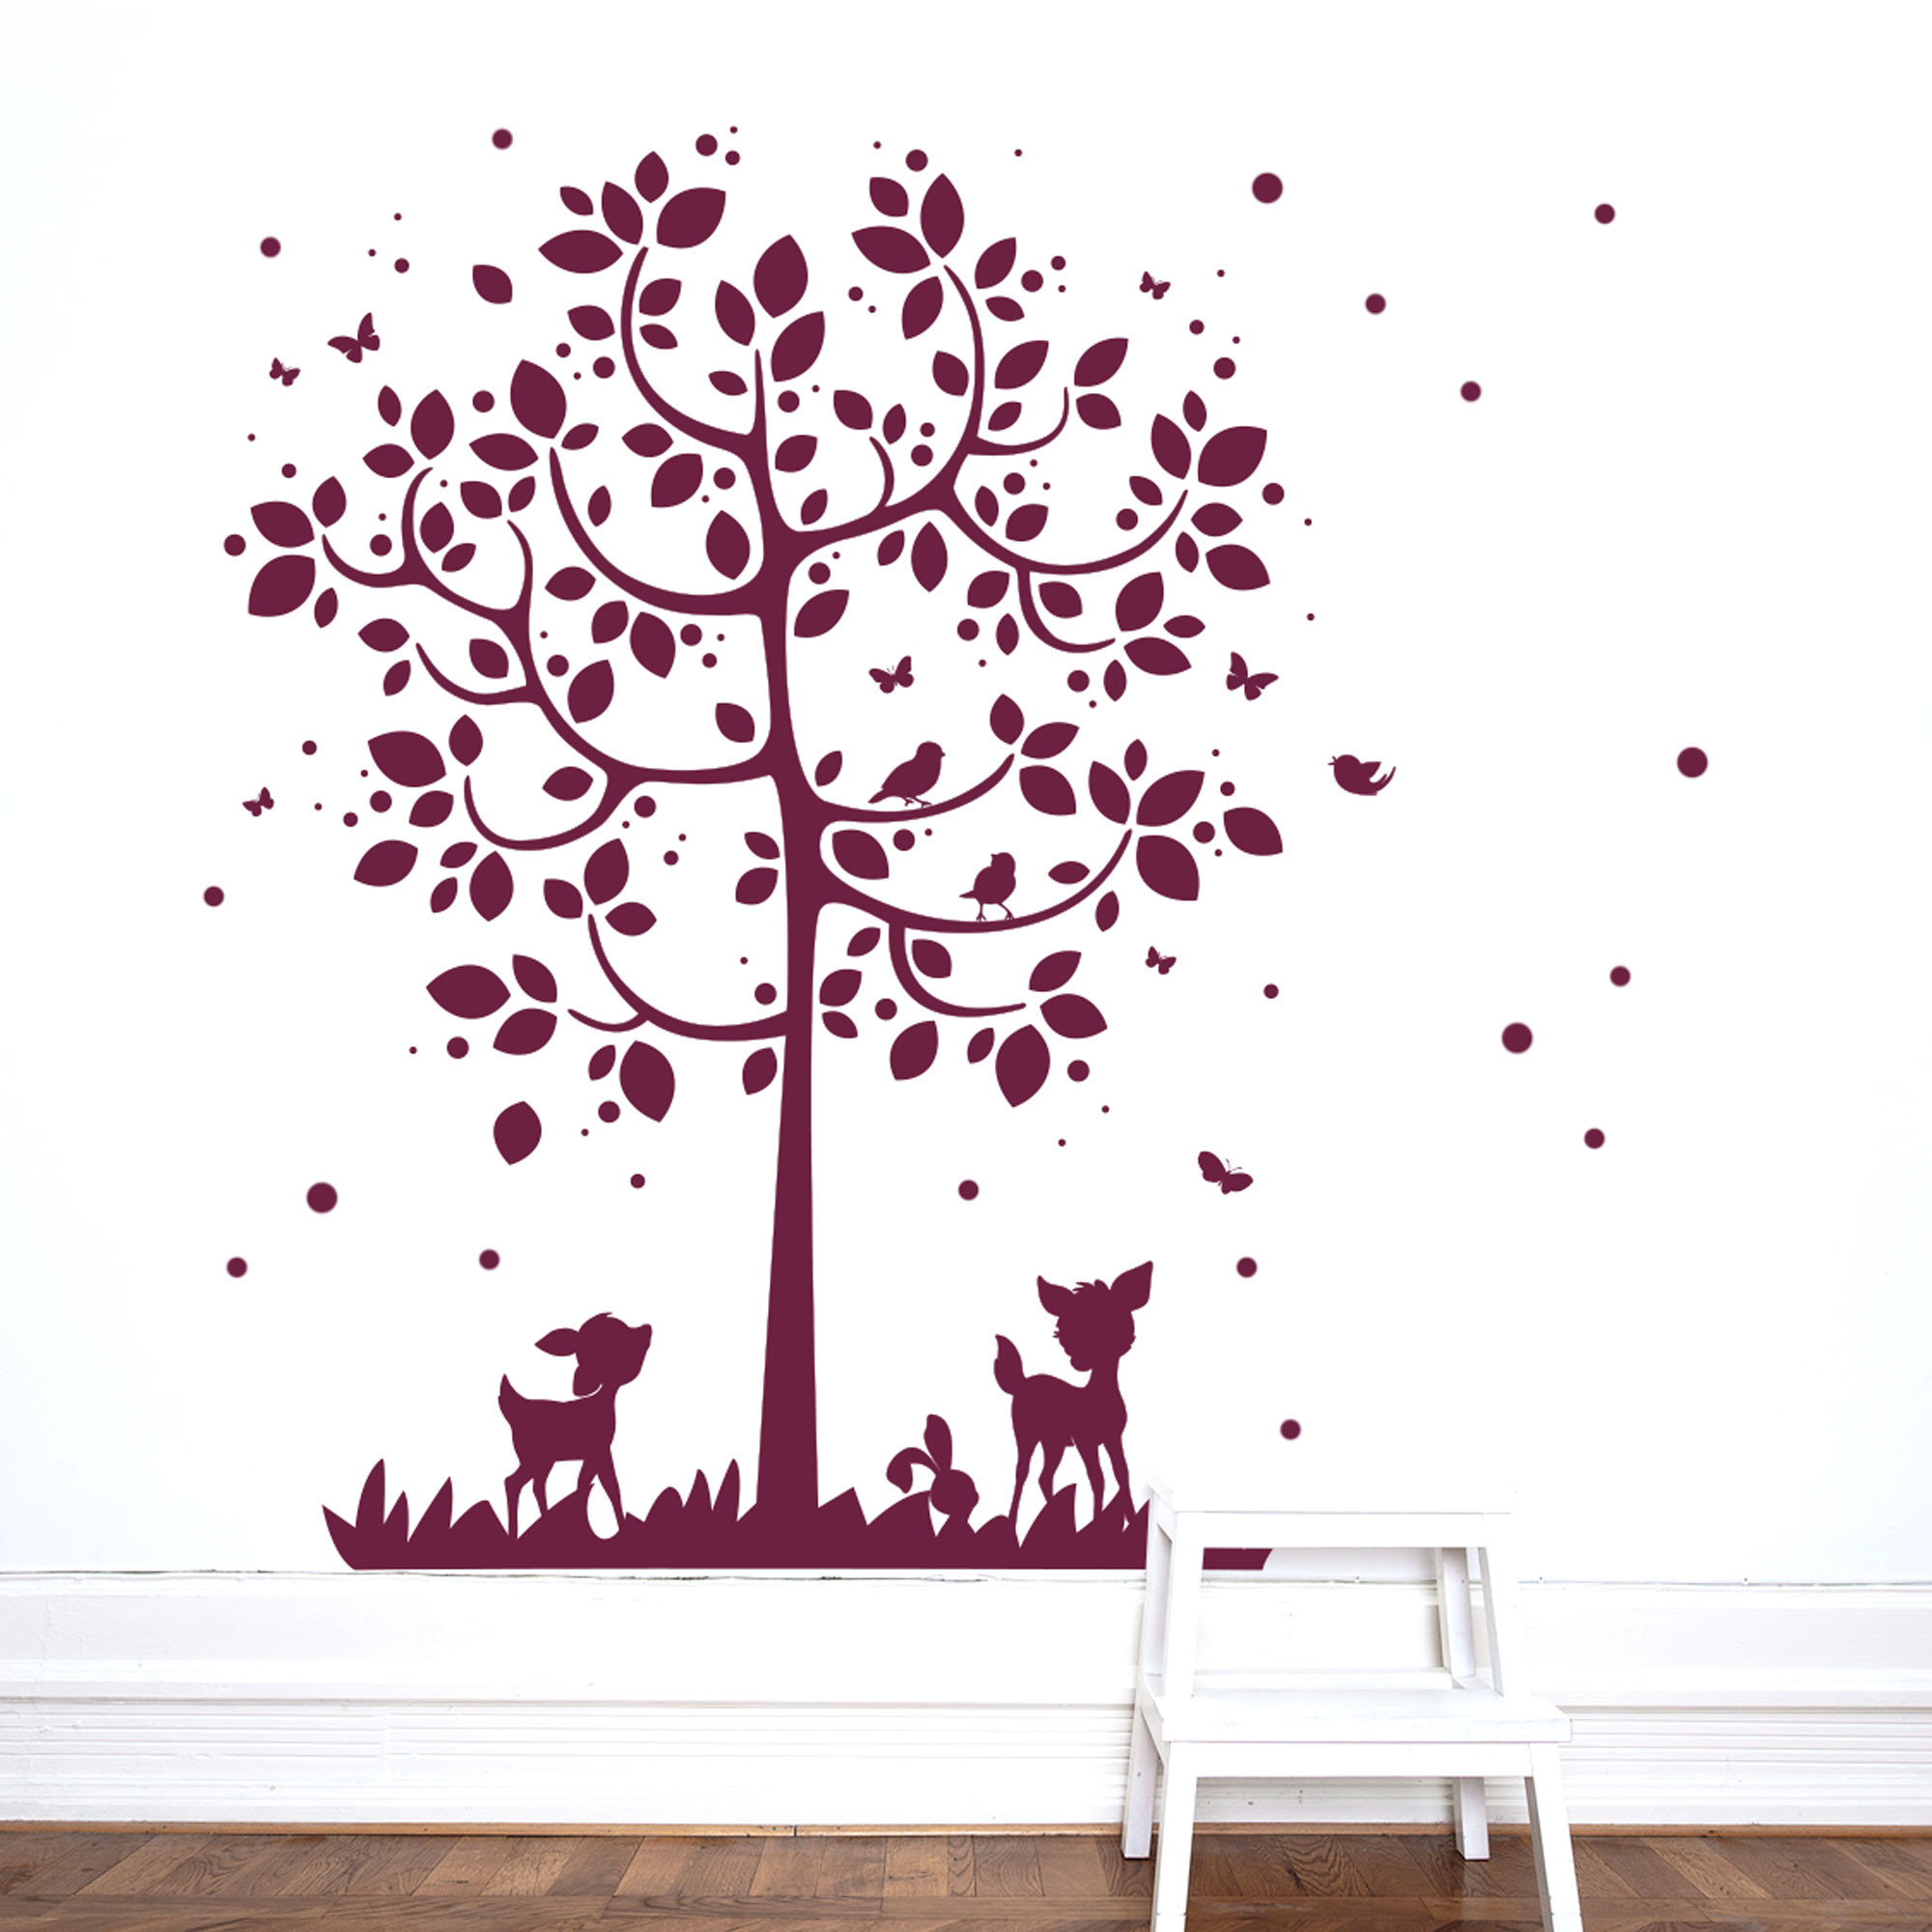 wandtattoo wandsticker baum mit reh hasen v gel schmetterlinge und punkte m2126 wandtattoos. Black Bedroom Furniture Sets. Home Design Ideas